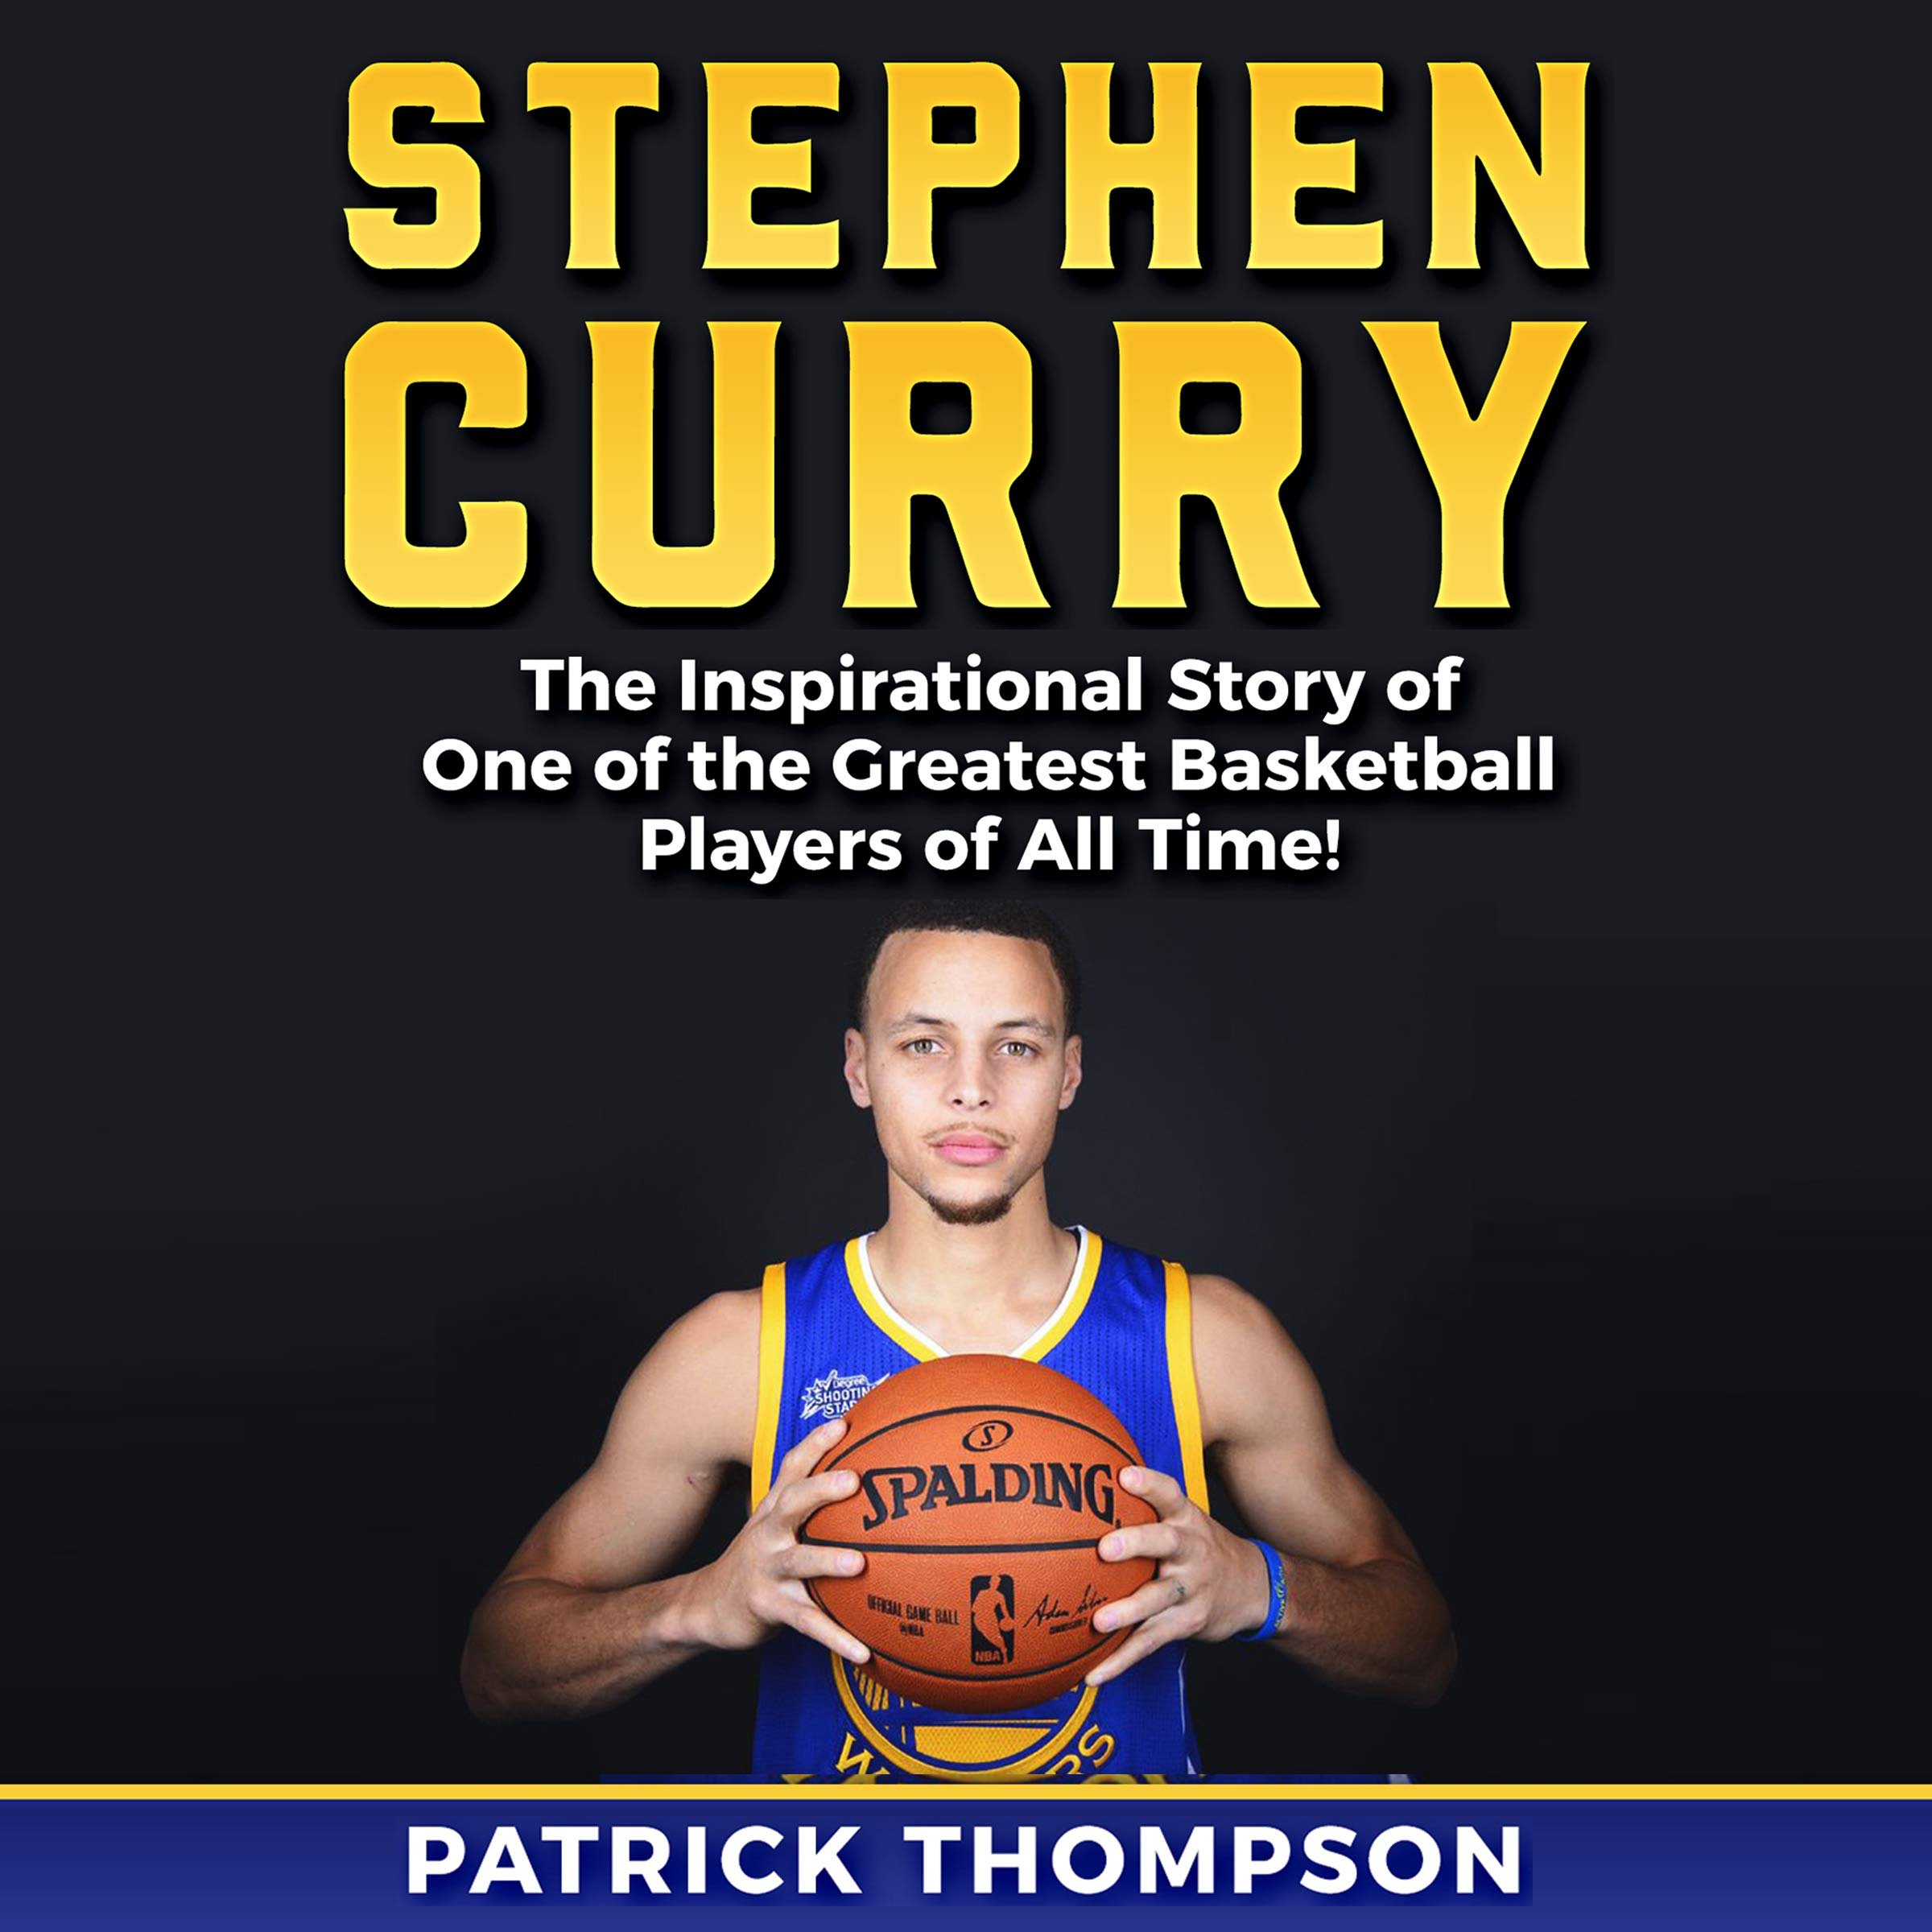 Download Stephen Curry: The Inspirational Story Of One Of The Greatest Basketball Players Of All Time! 